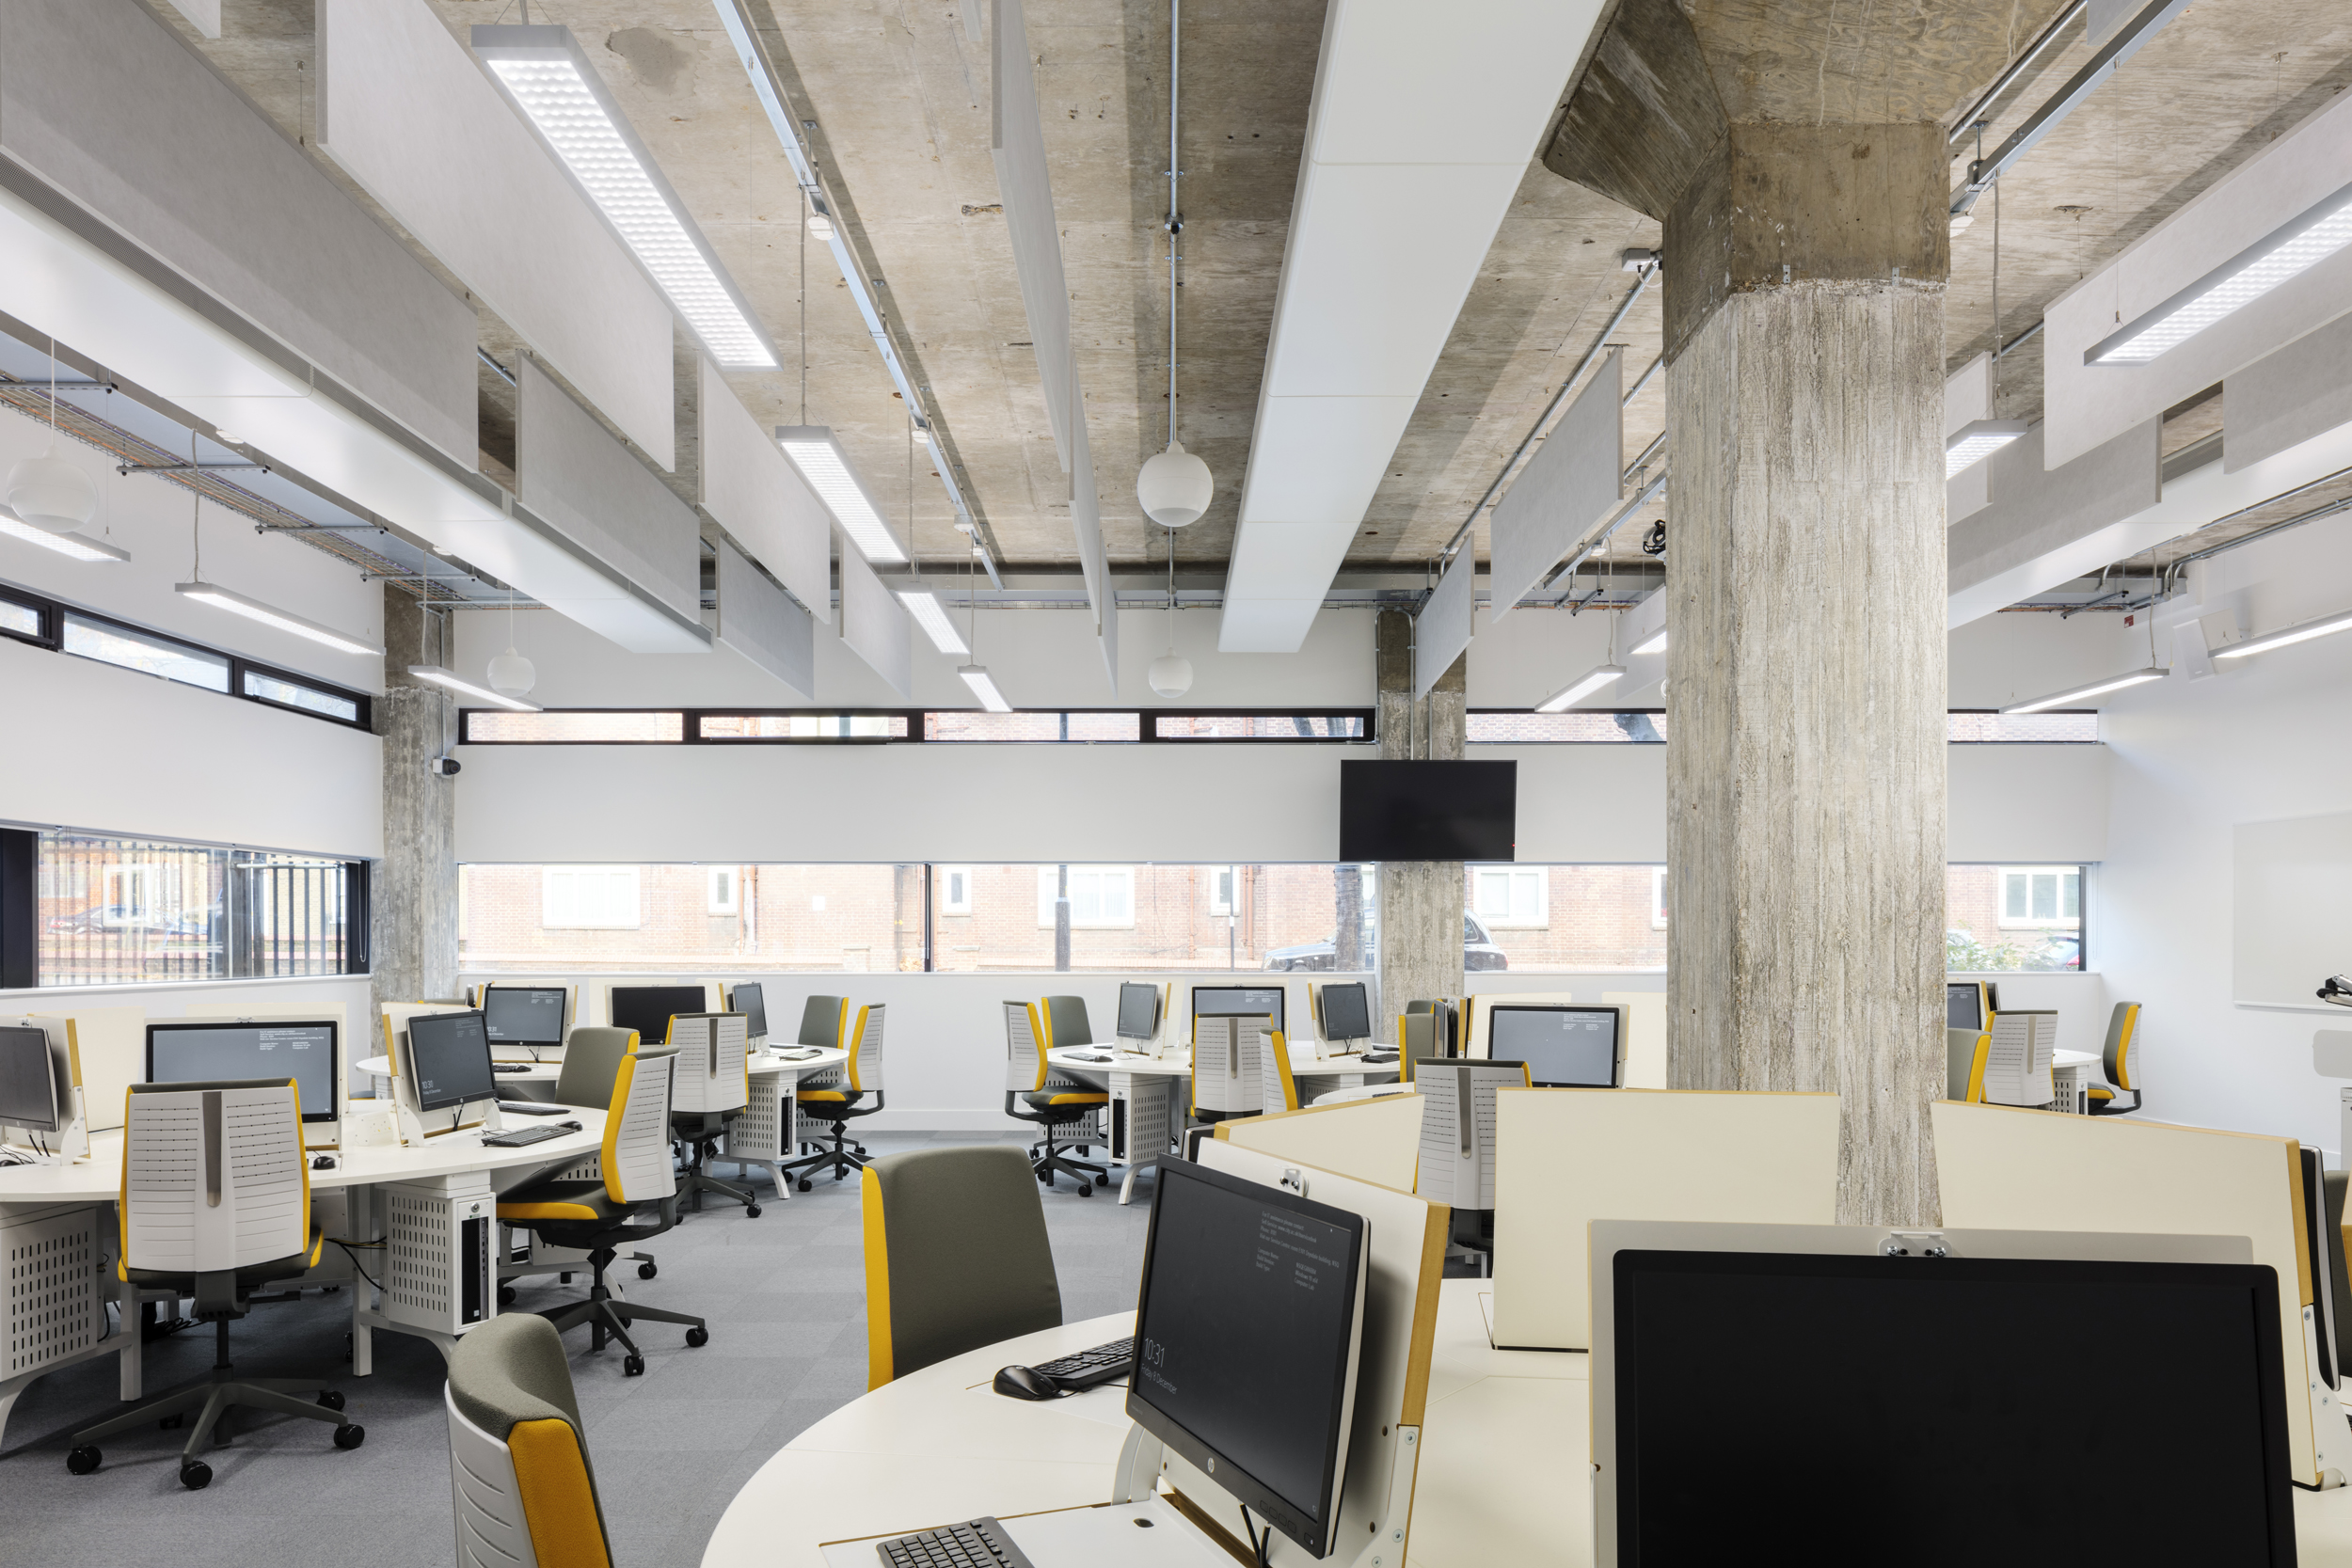 LTS Architects Drysdale City University Study Space Retractable screens shown